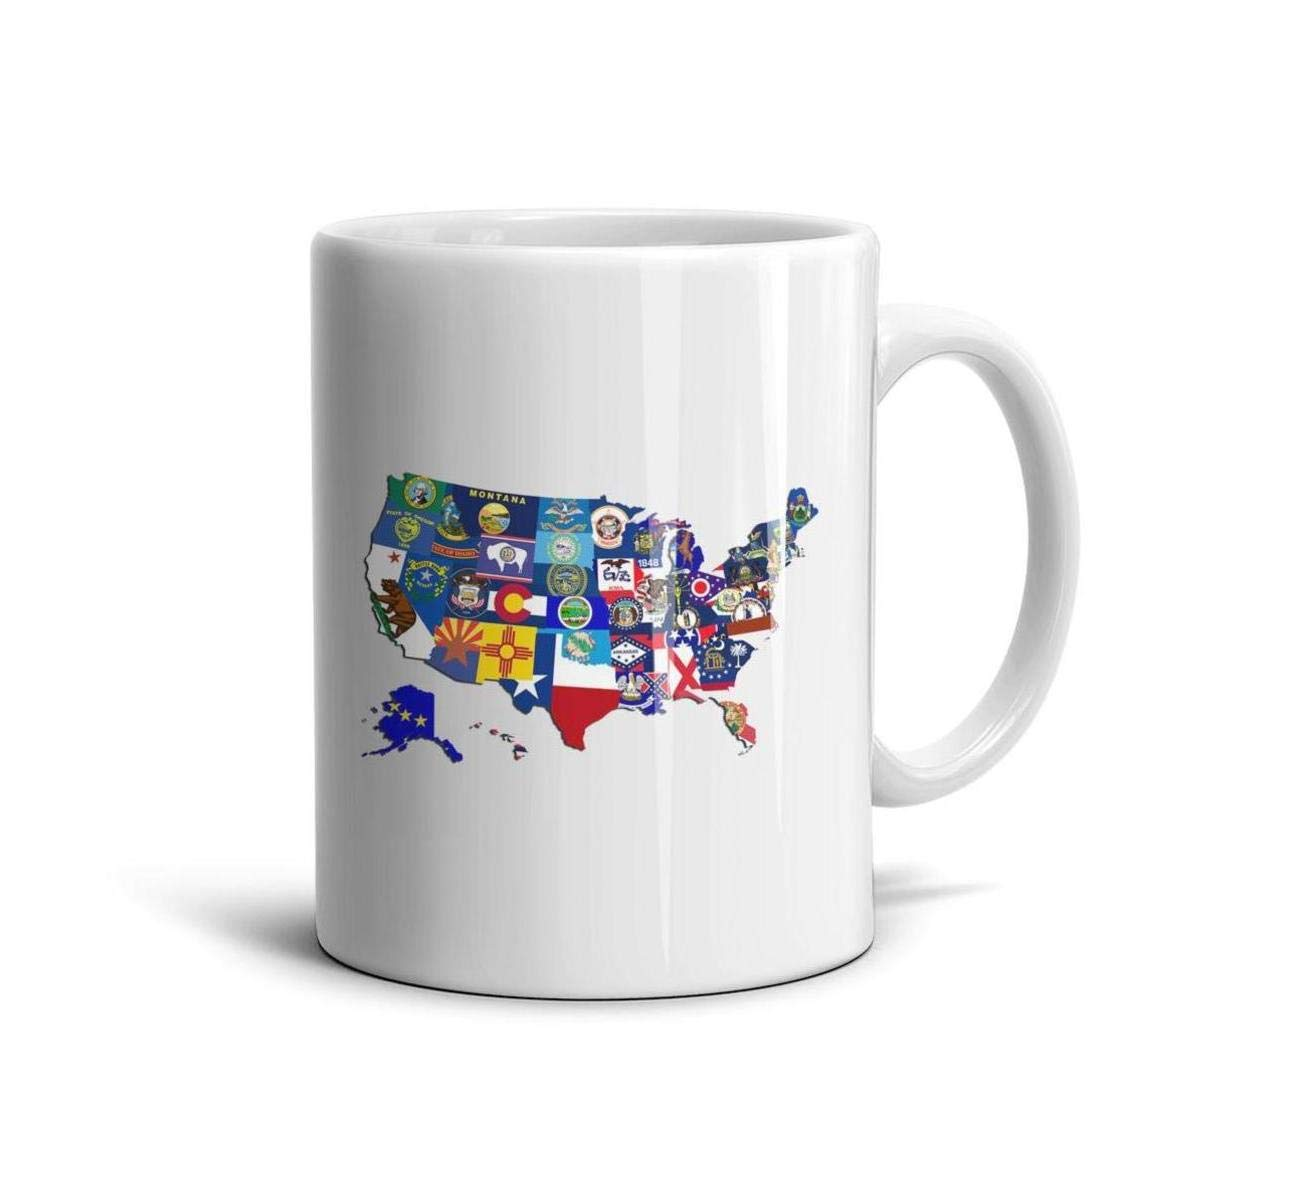 Shirtjkdsaa Funny Coffee Mug State Map of The United States Flags Mosaic Unique White Ceramic Souvenir Reusable Travel Mugs